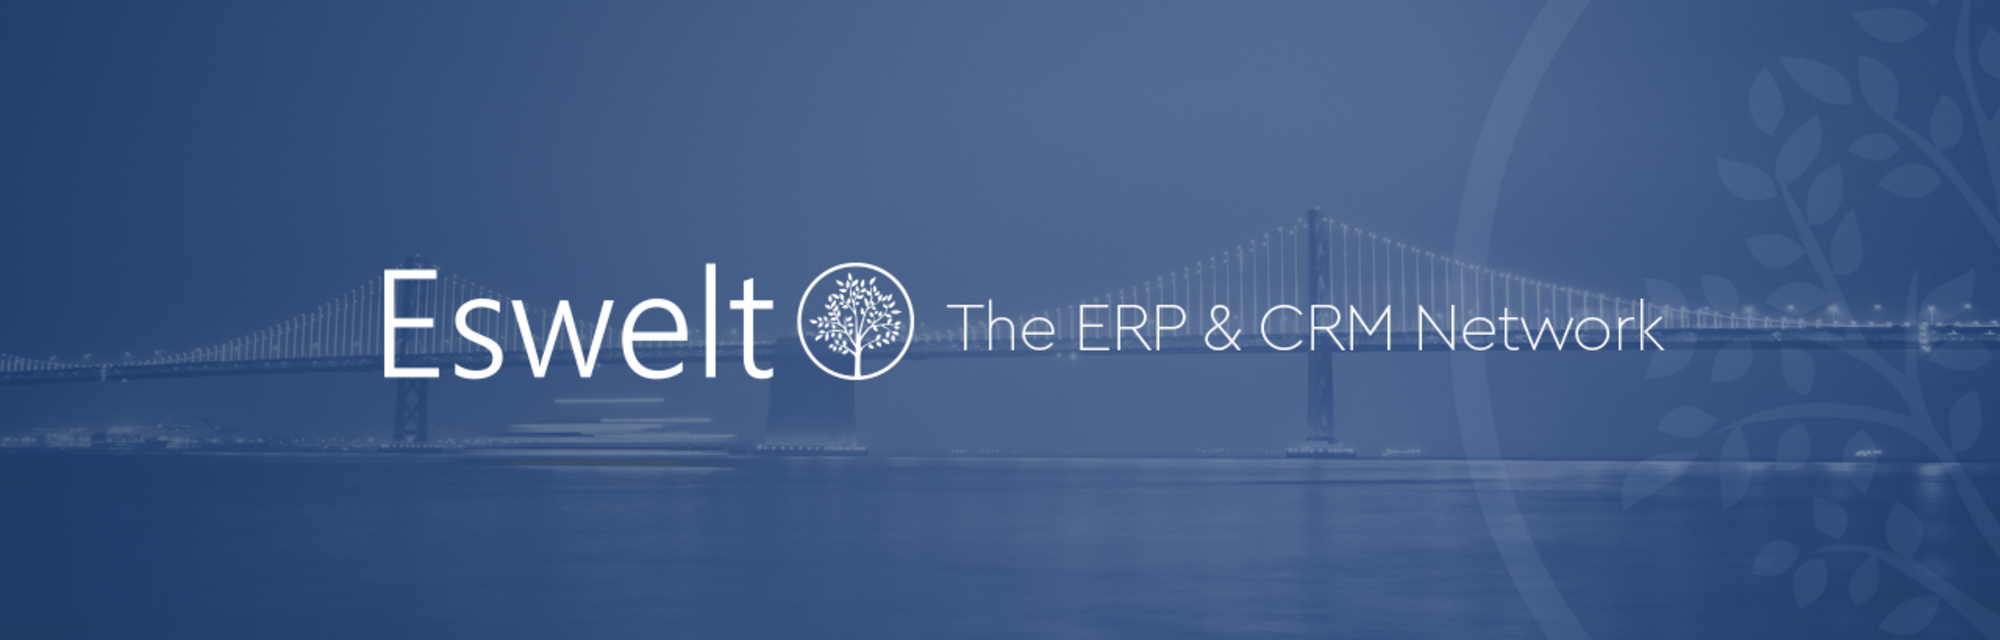 Eswelt the ERP & CRM network